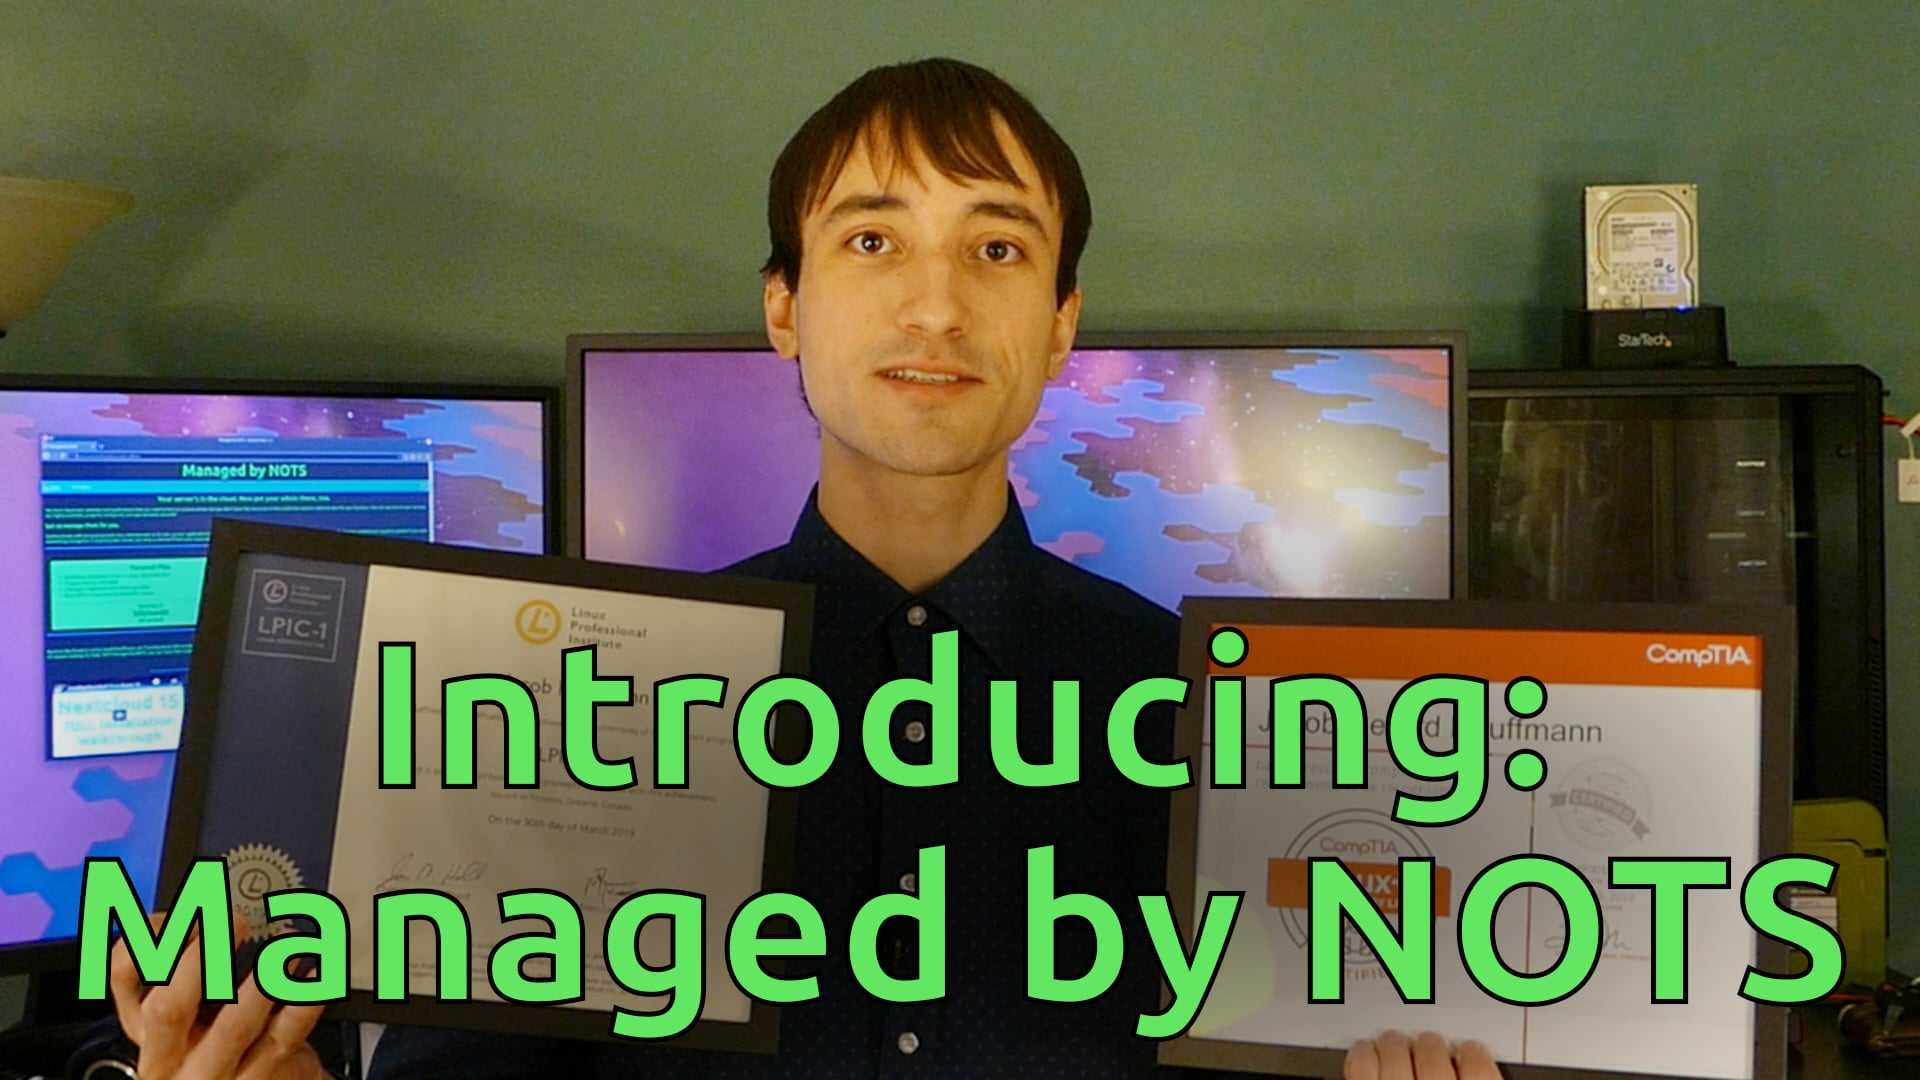 Introducing: Managed by NOTS